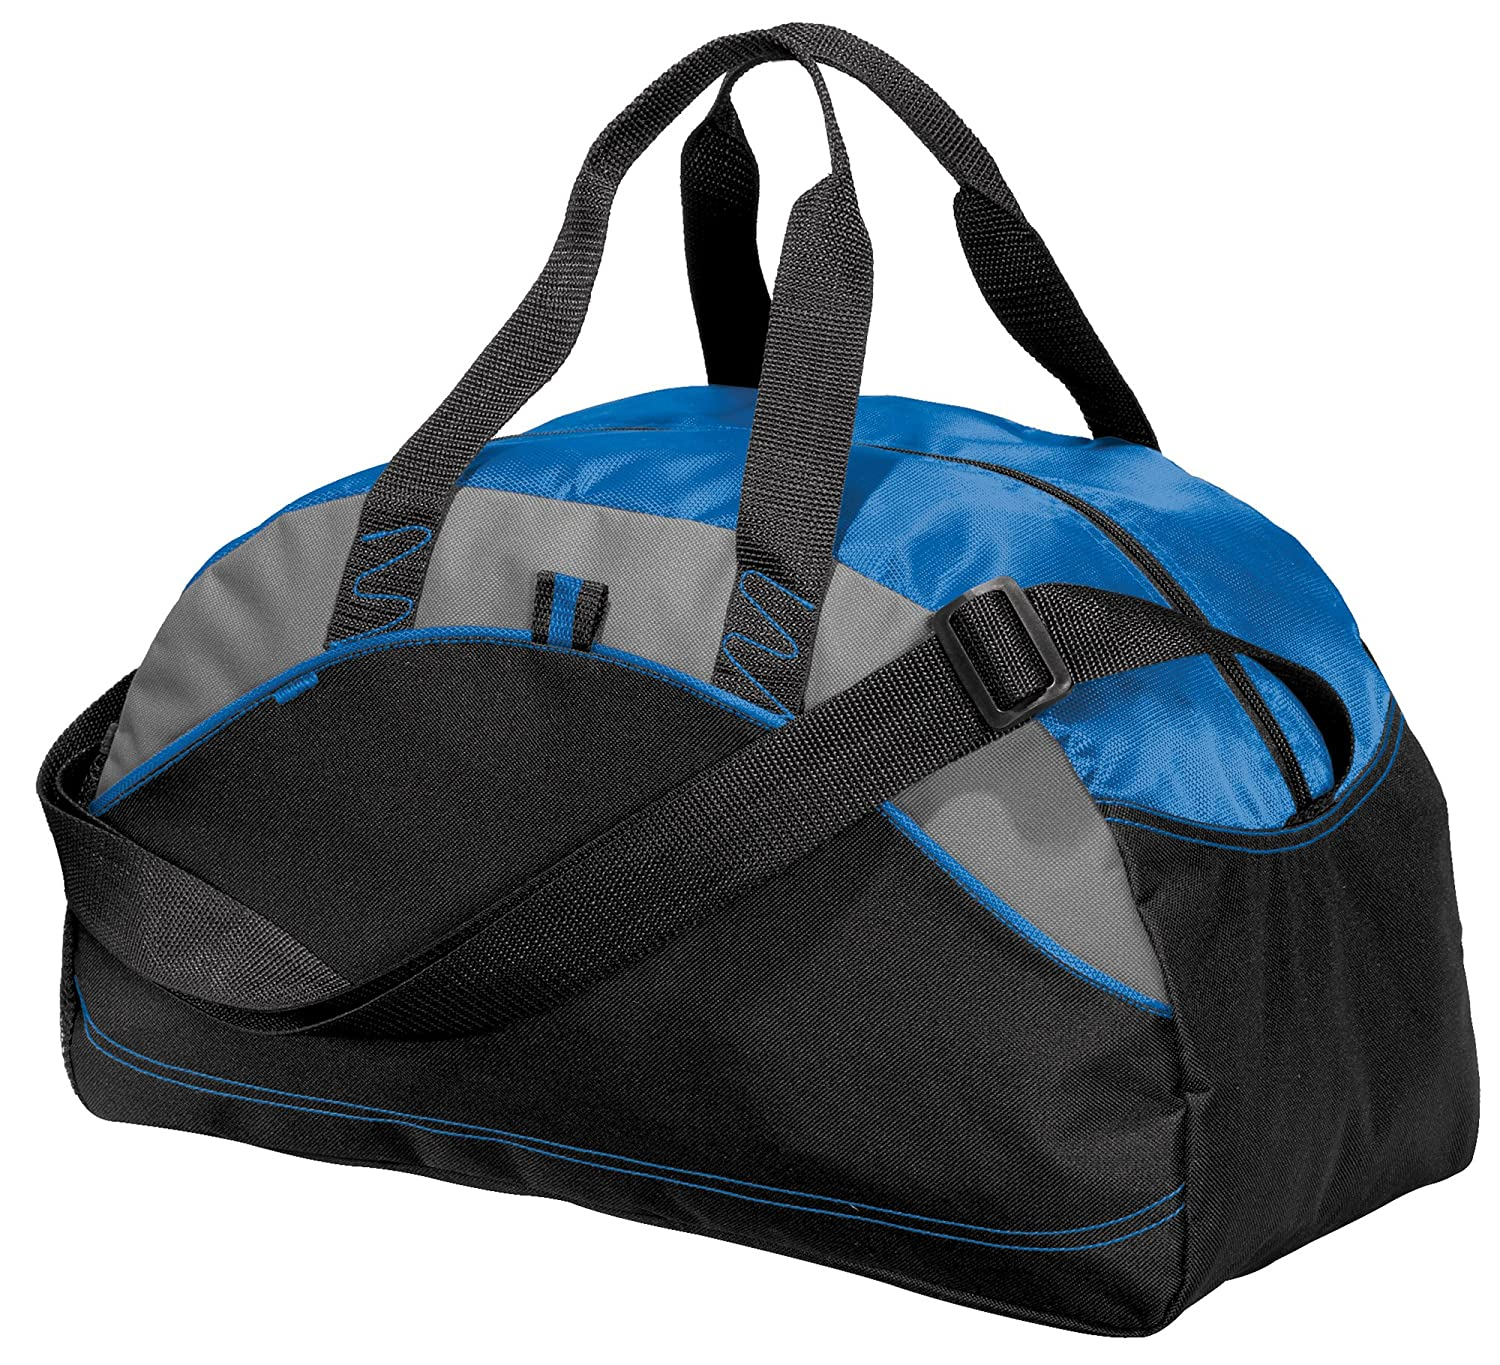 Fresh Amazon.com | Joe's USA Small Gym Bag Duffle Workout Sport Bag  HJ22